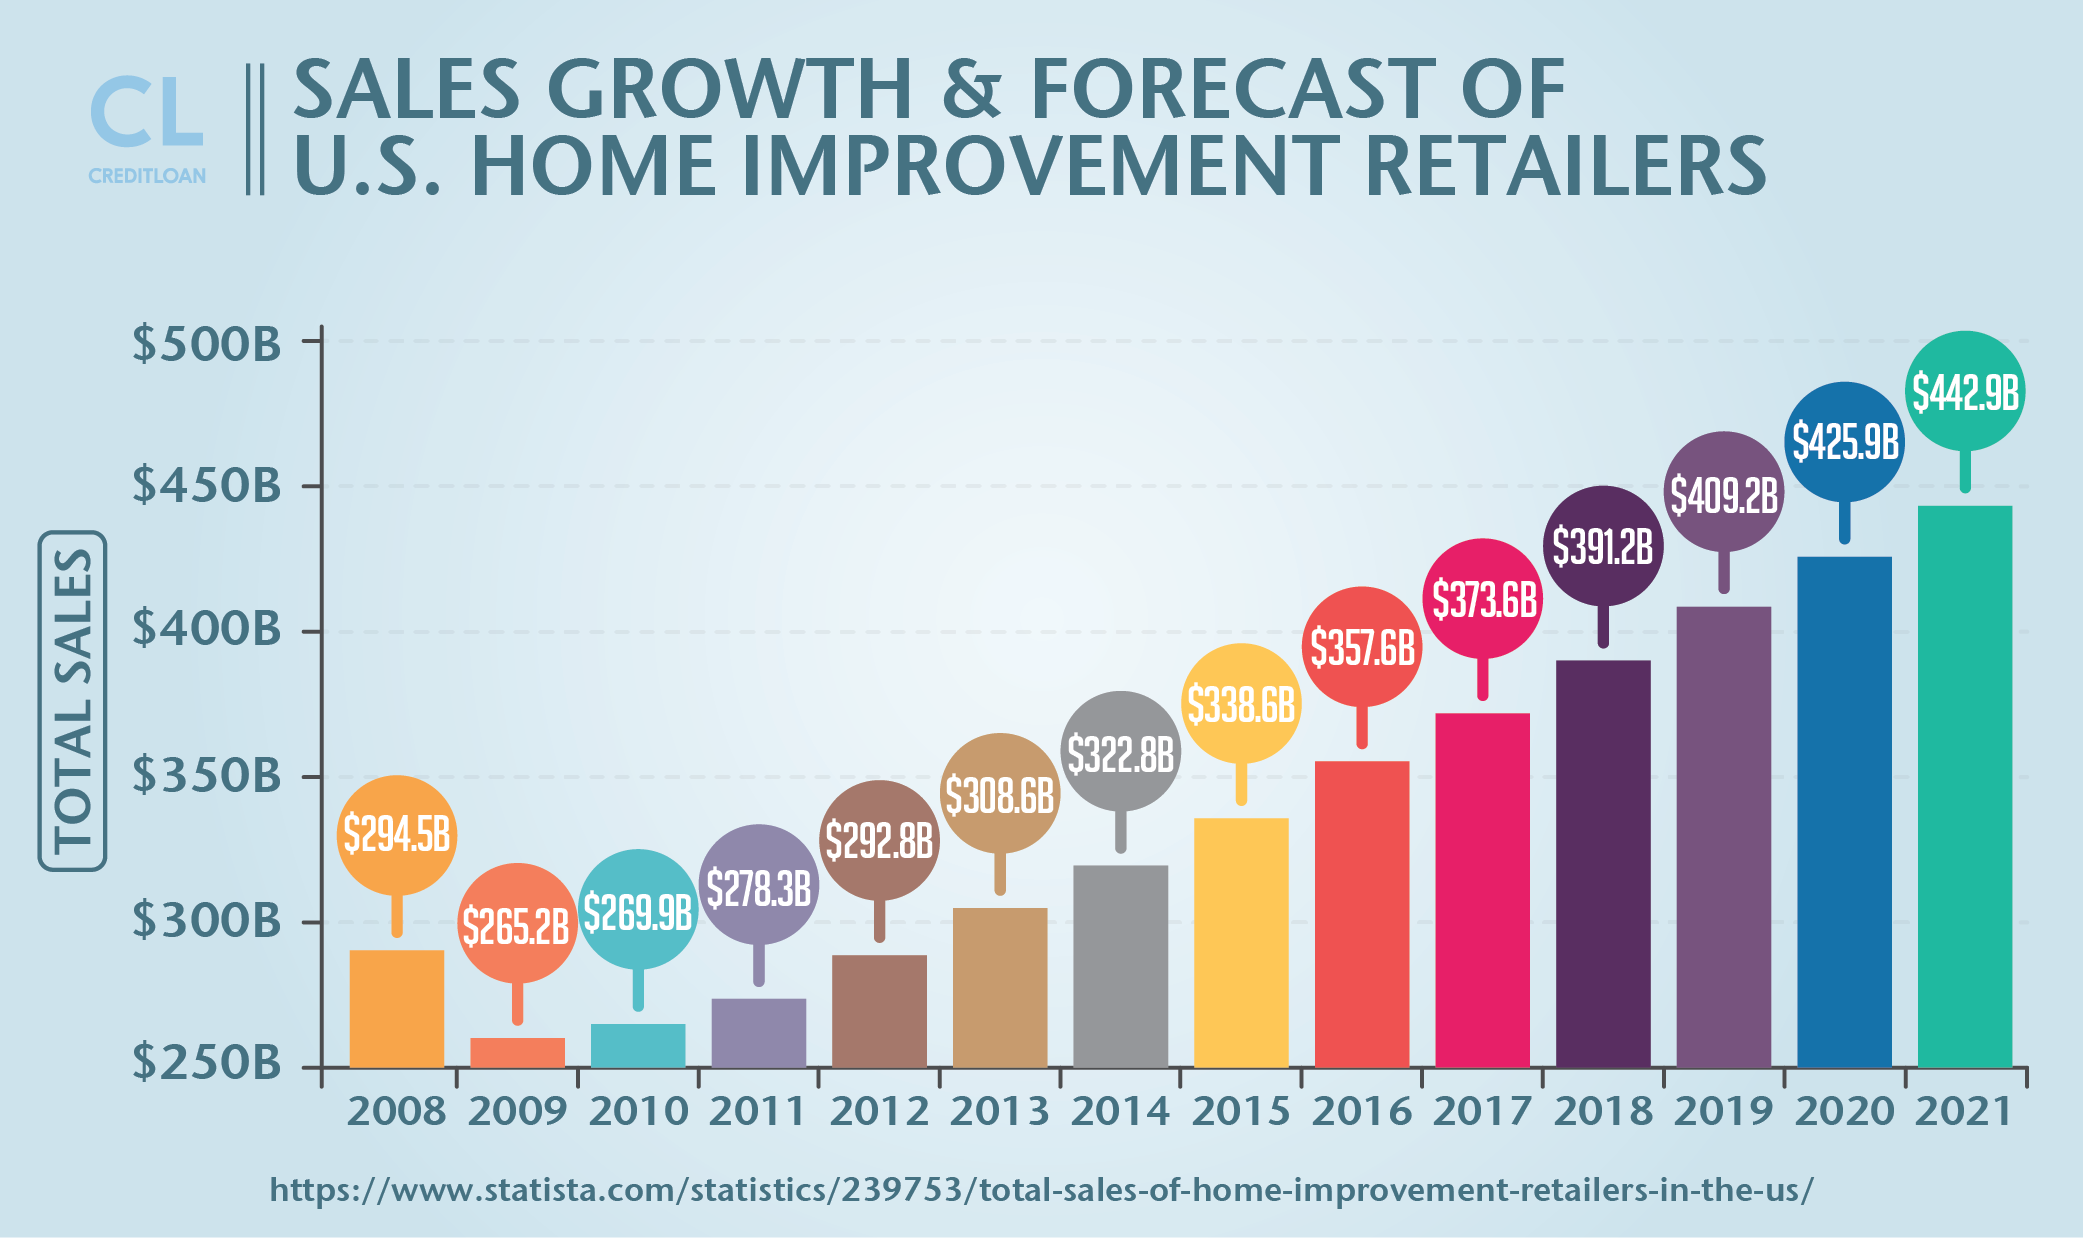 Sales Growth & Forecast of U.S. Home Improvement Retailers from 2008-2021